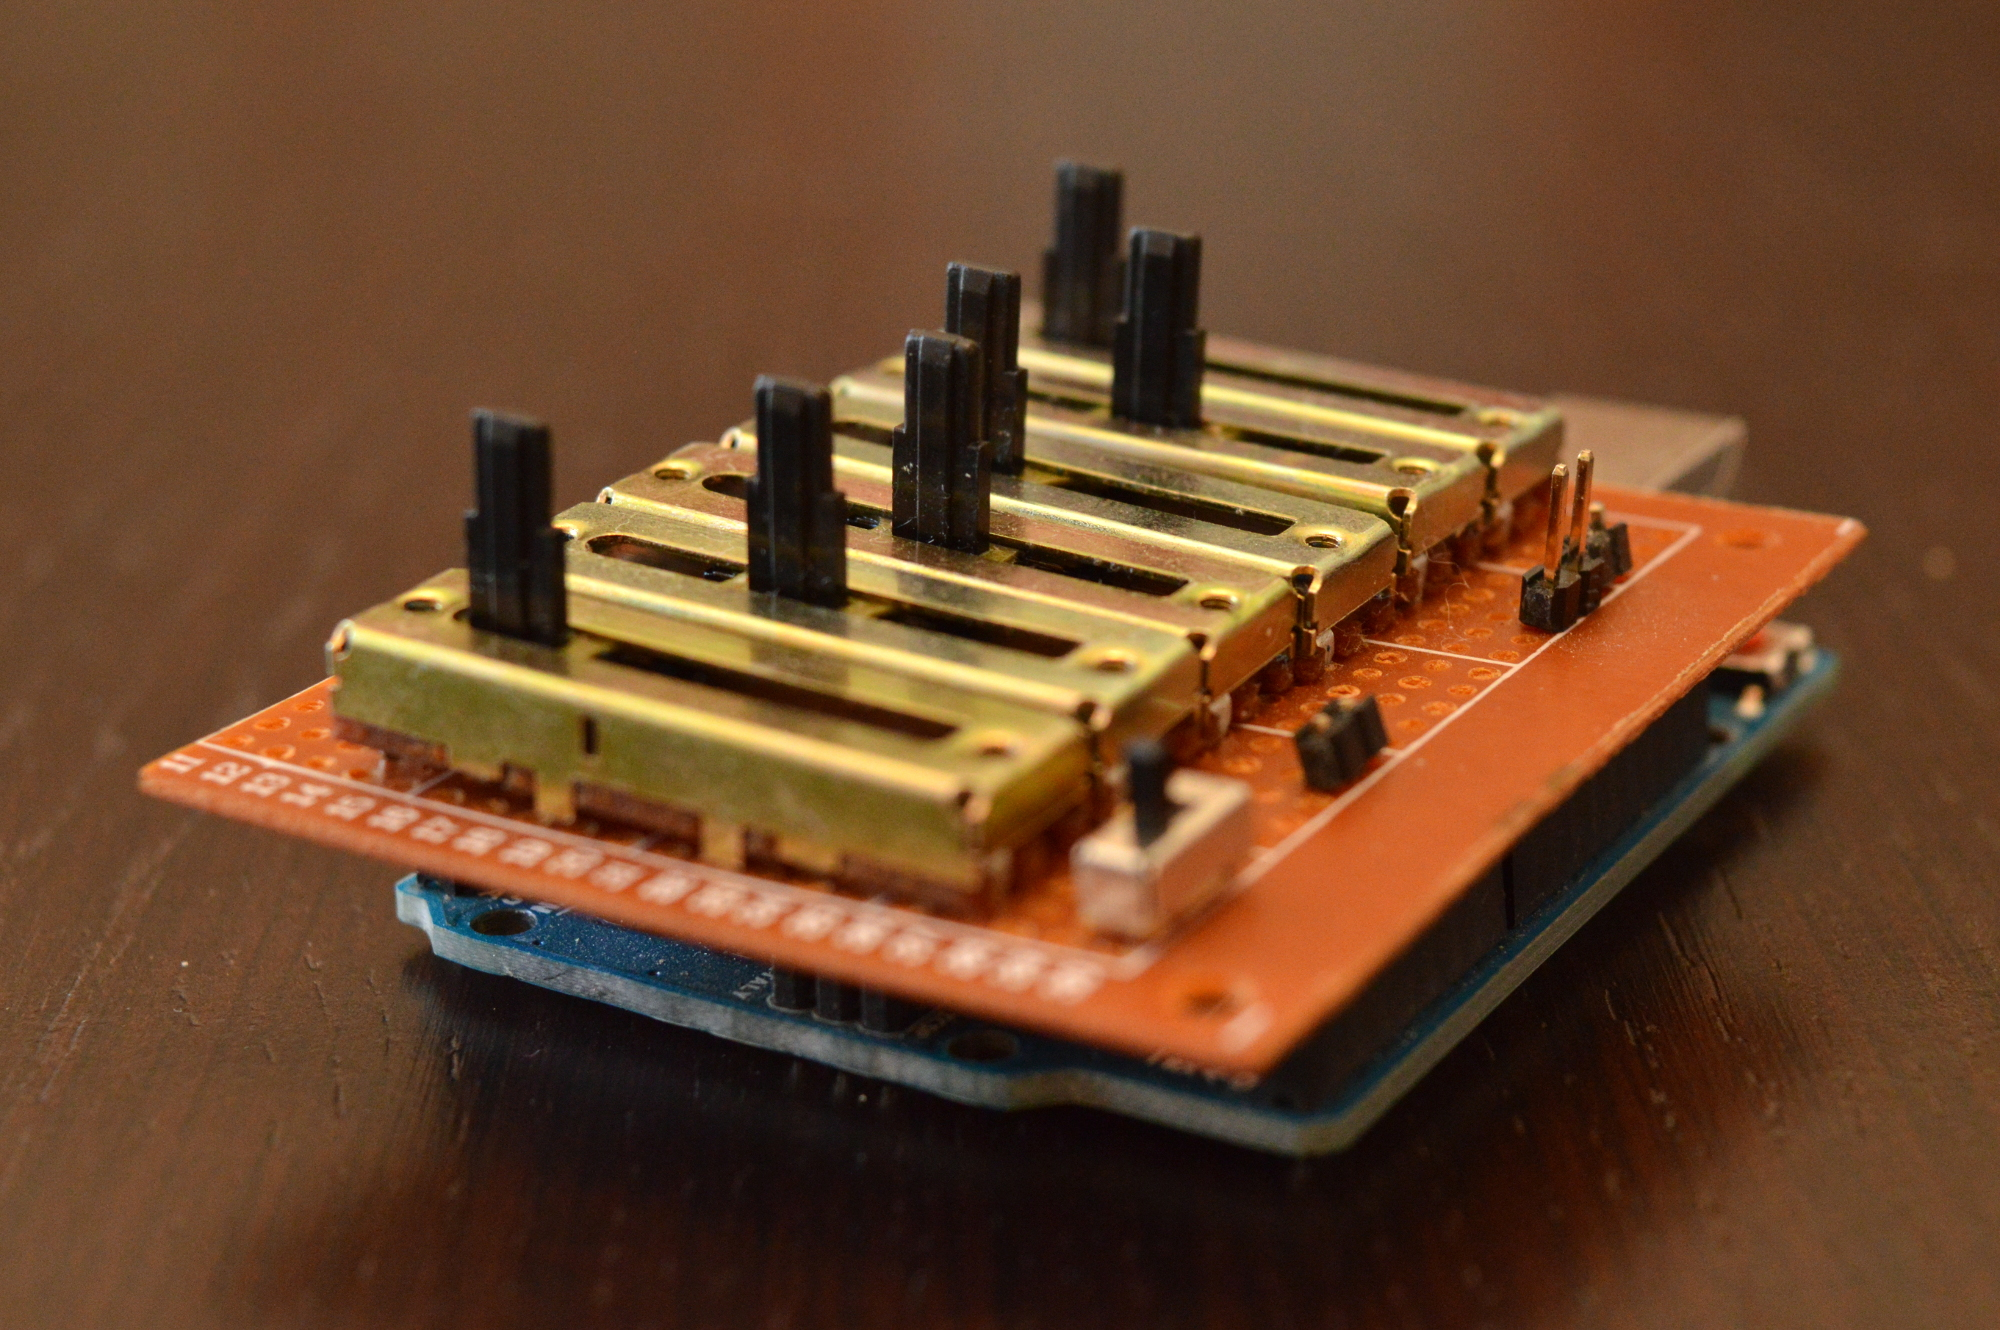 Arduino Step Sequencer: How to program a step sequencer with Arduino